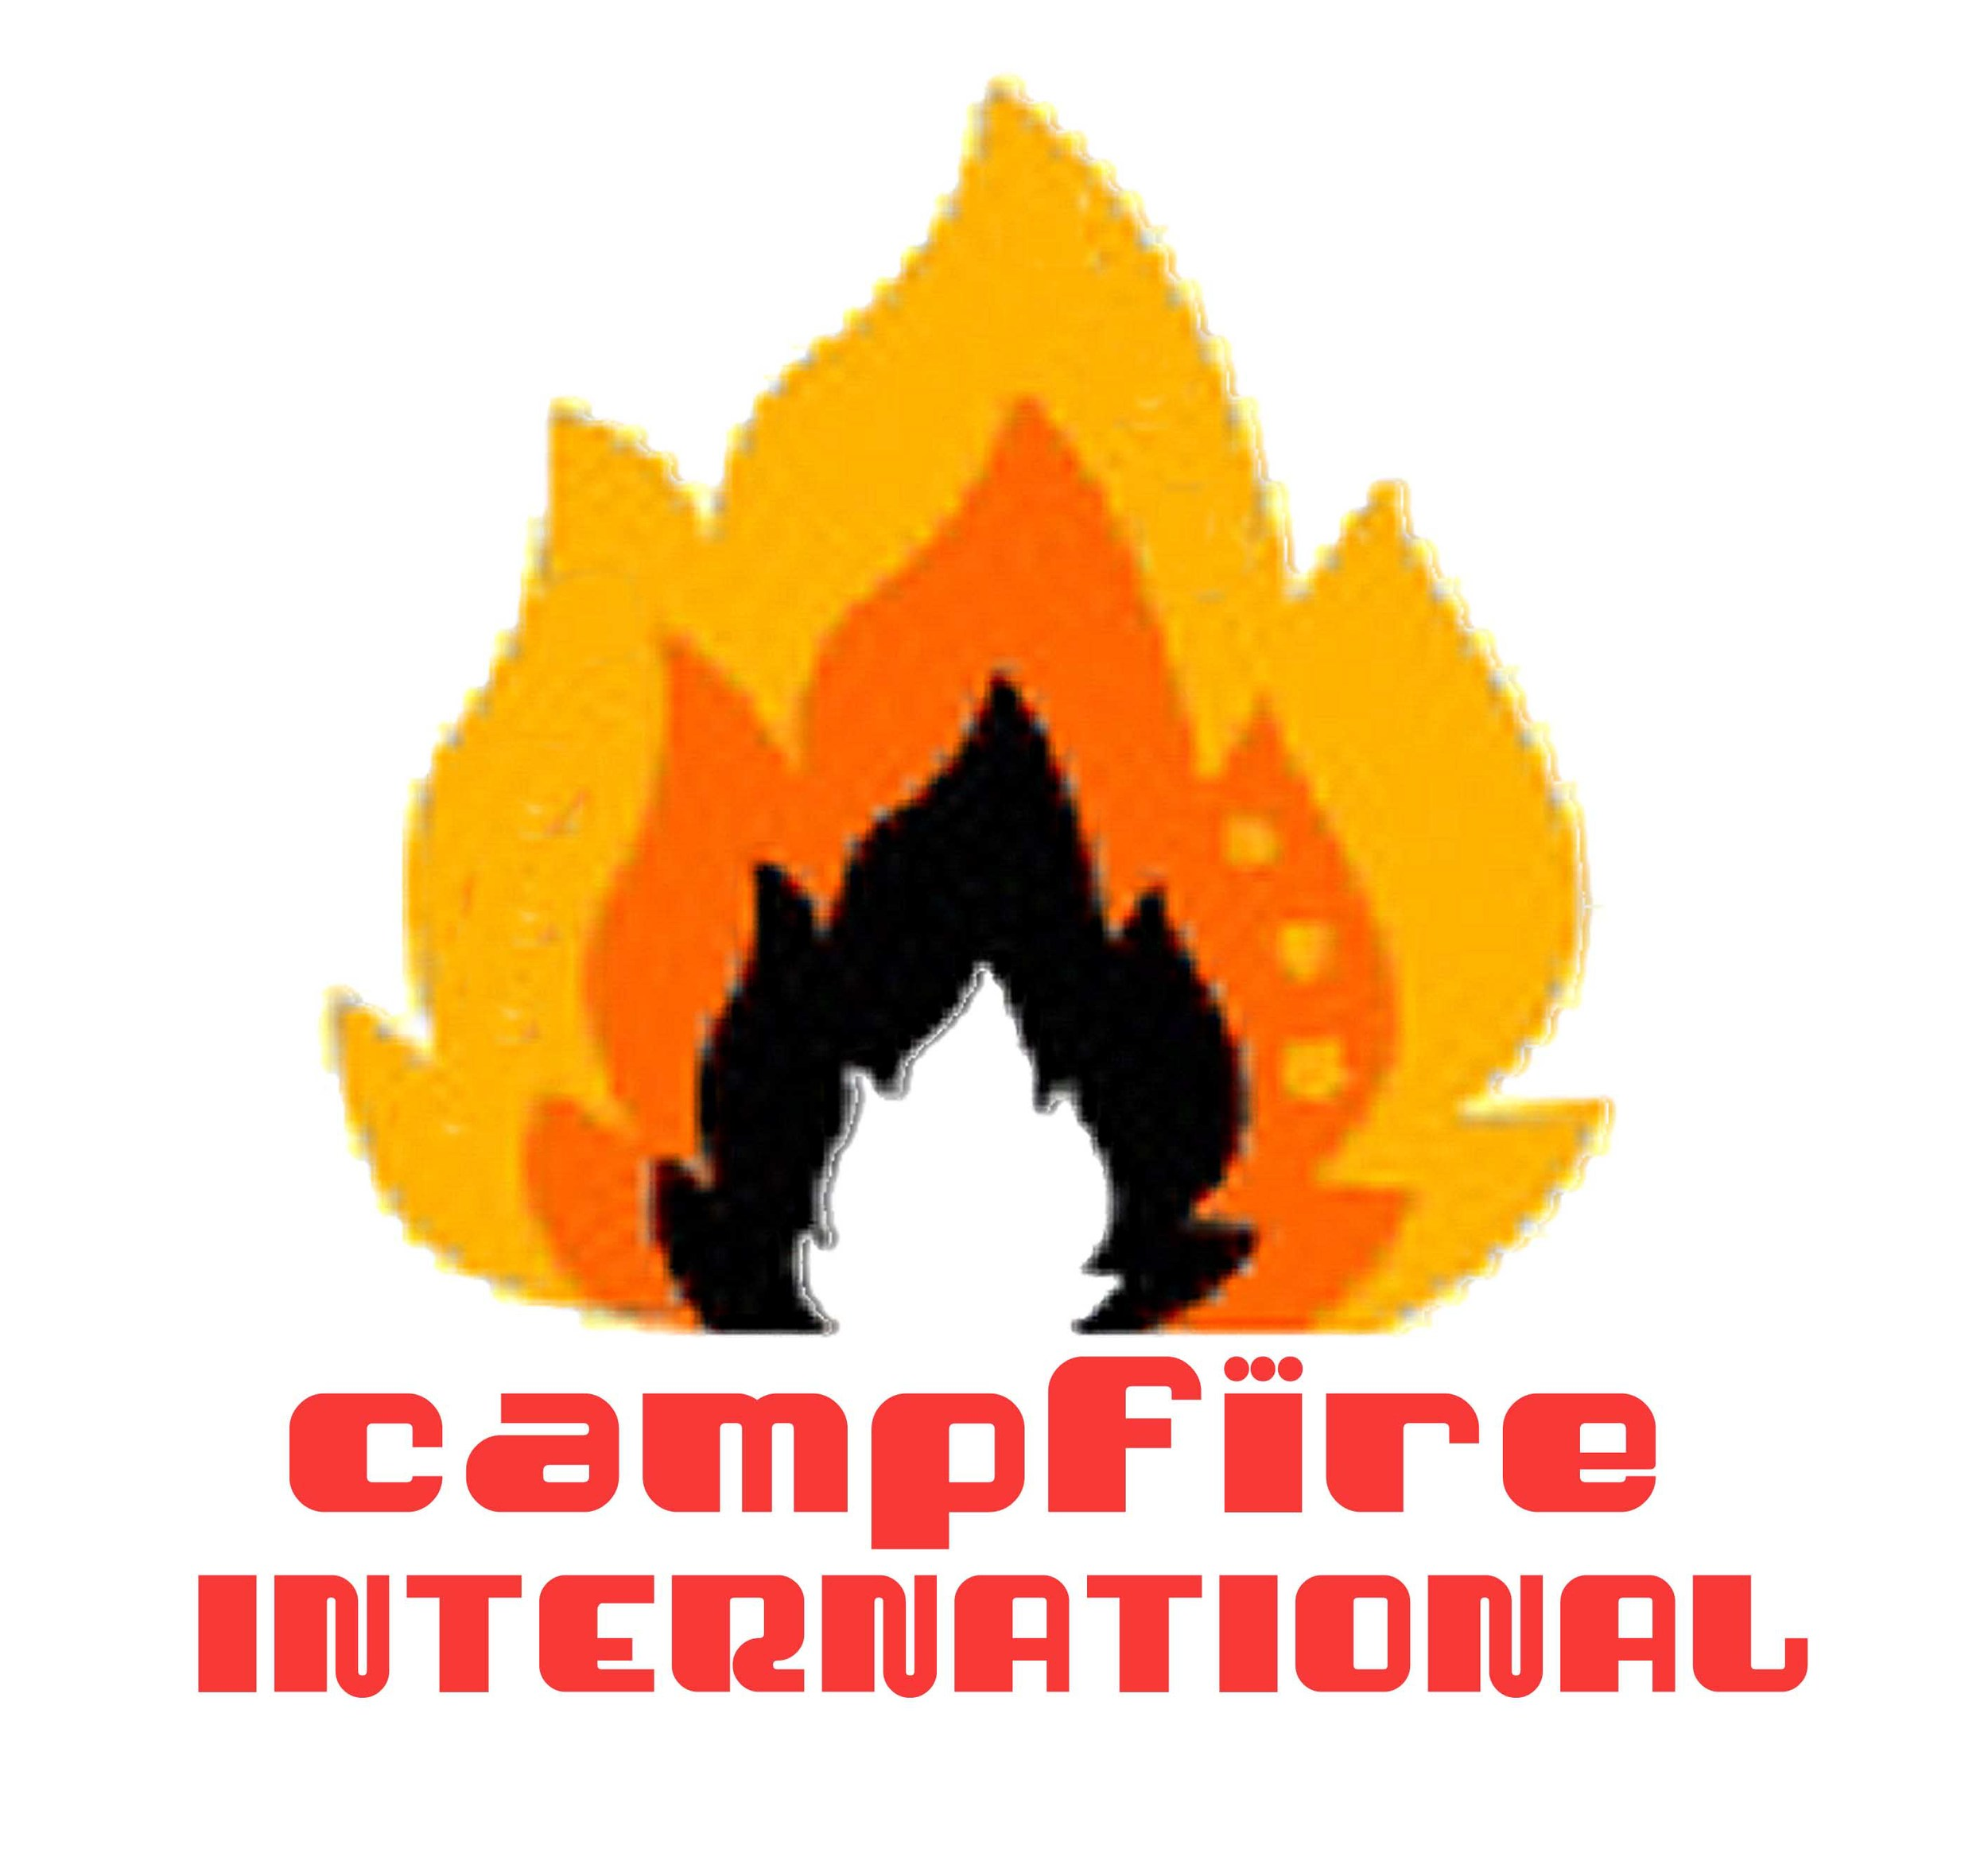 campfire international större copy.jpg